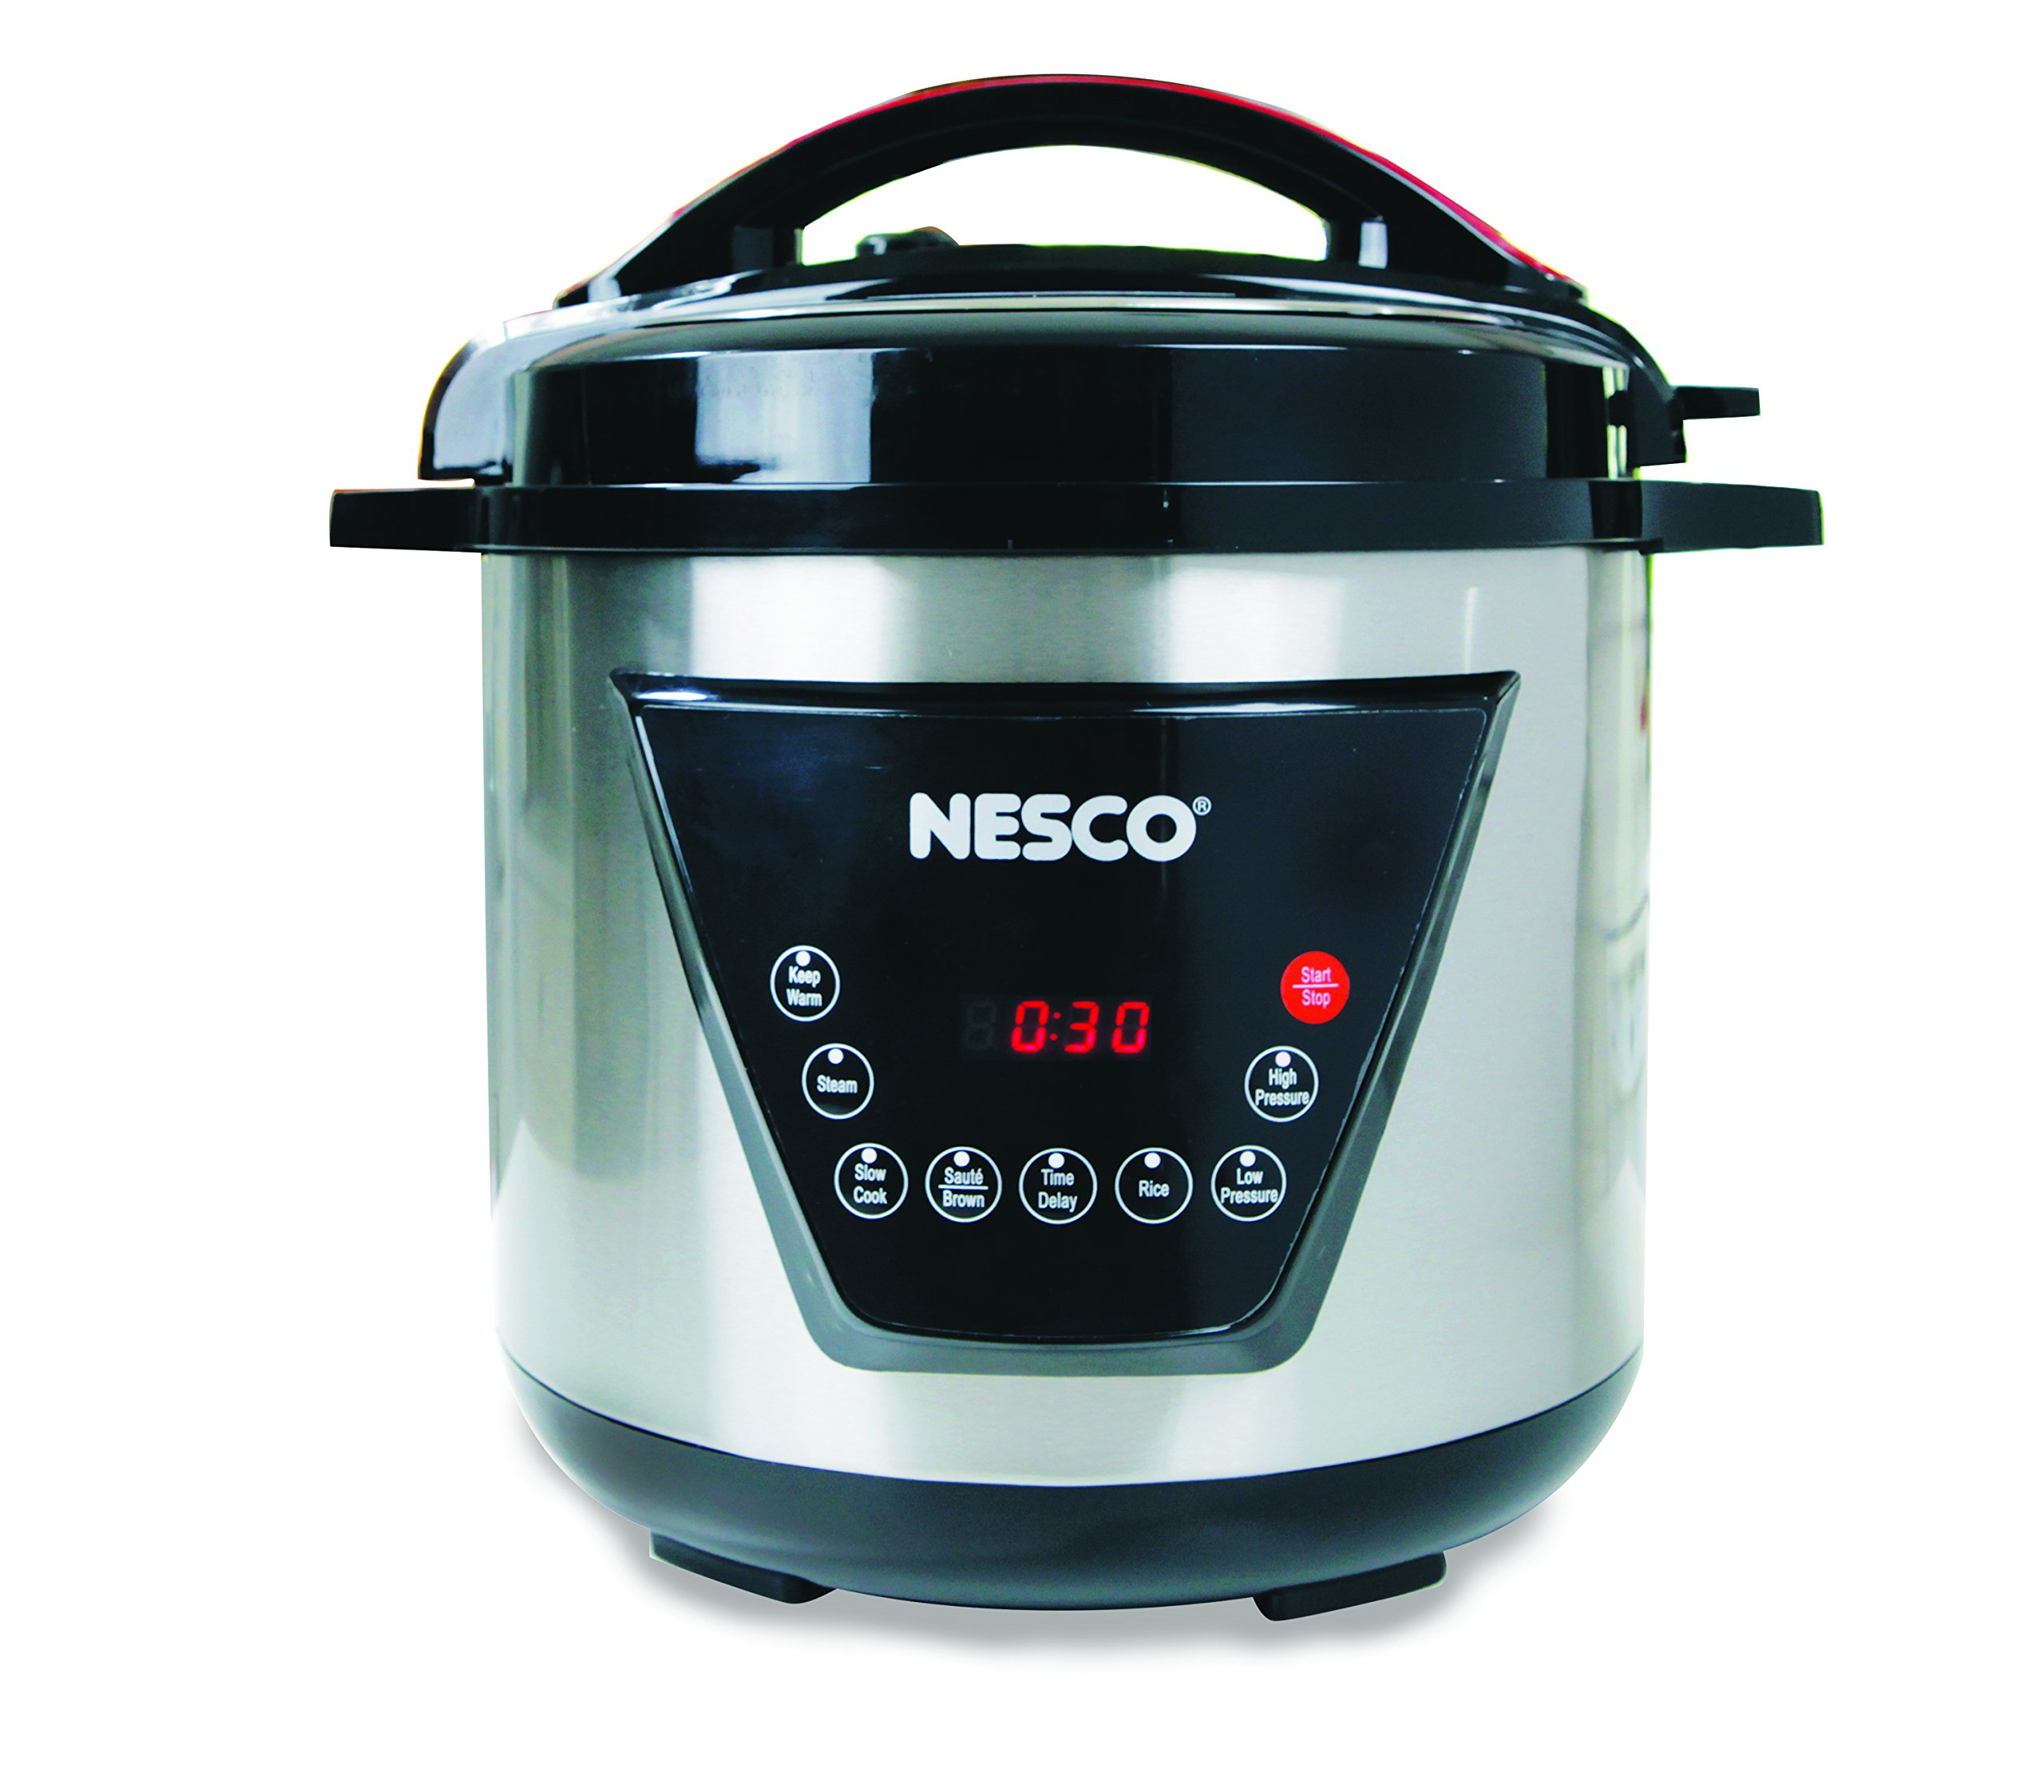 Nesco American Harvest Nesco PC8-25 Pressure Cooker, 8 quart, Silver/Black